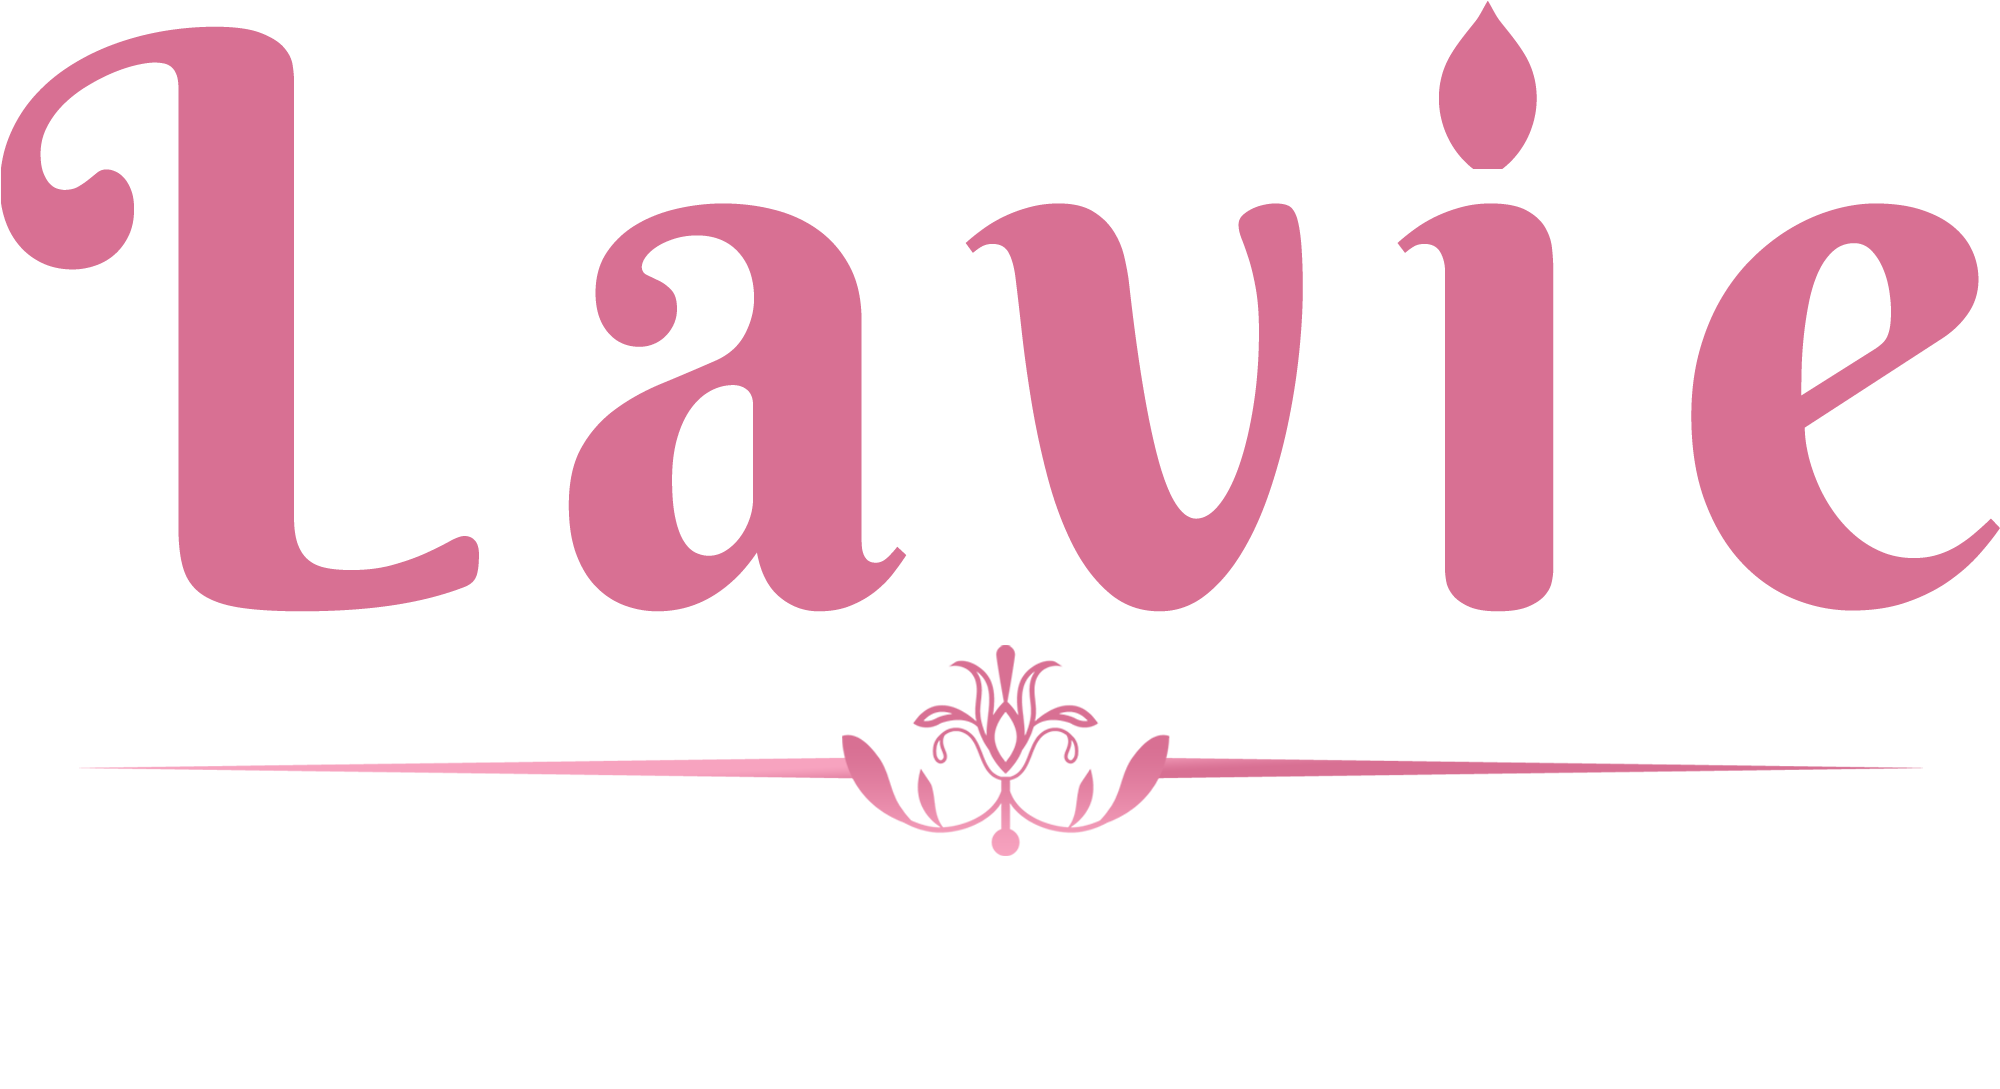 Transparent manicures clipart - Nail Spa Lavie Nails - Graphic Design